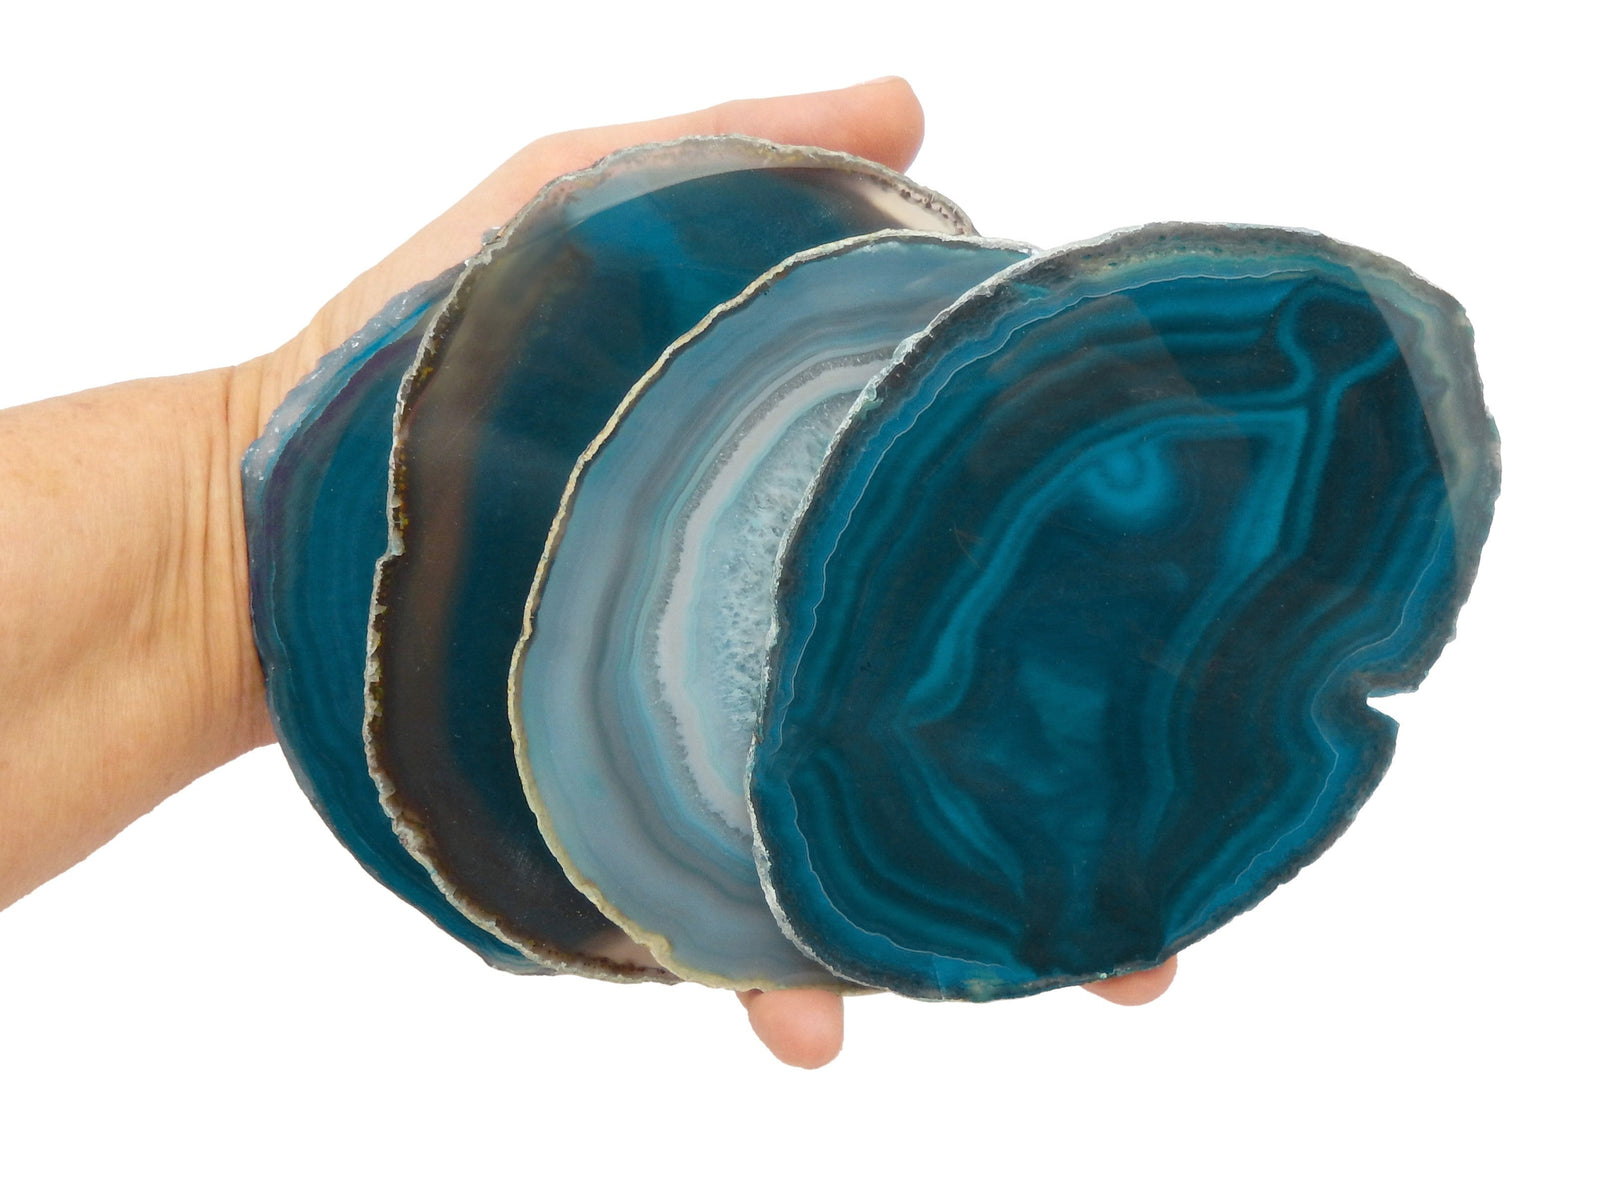 Agate Slices - Teal Agate Slice - Agate Slices #5 - Great For Coasters And Home Decor (AGBS)